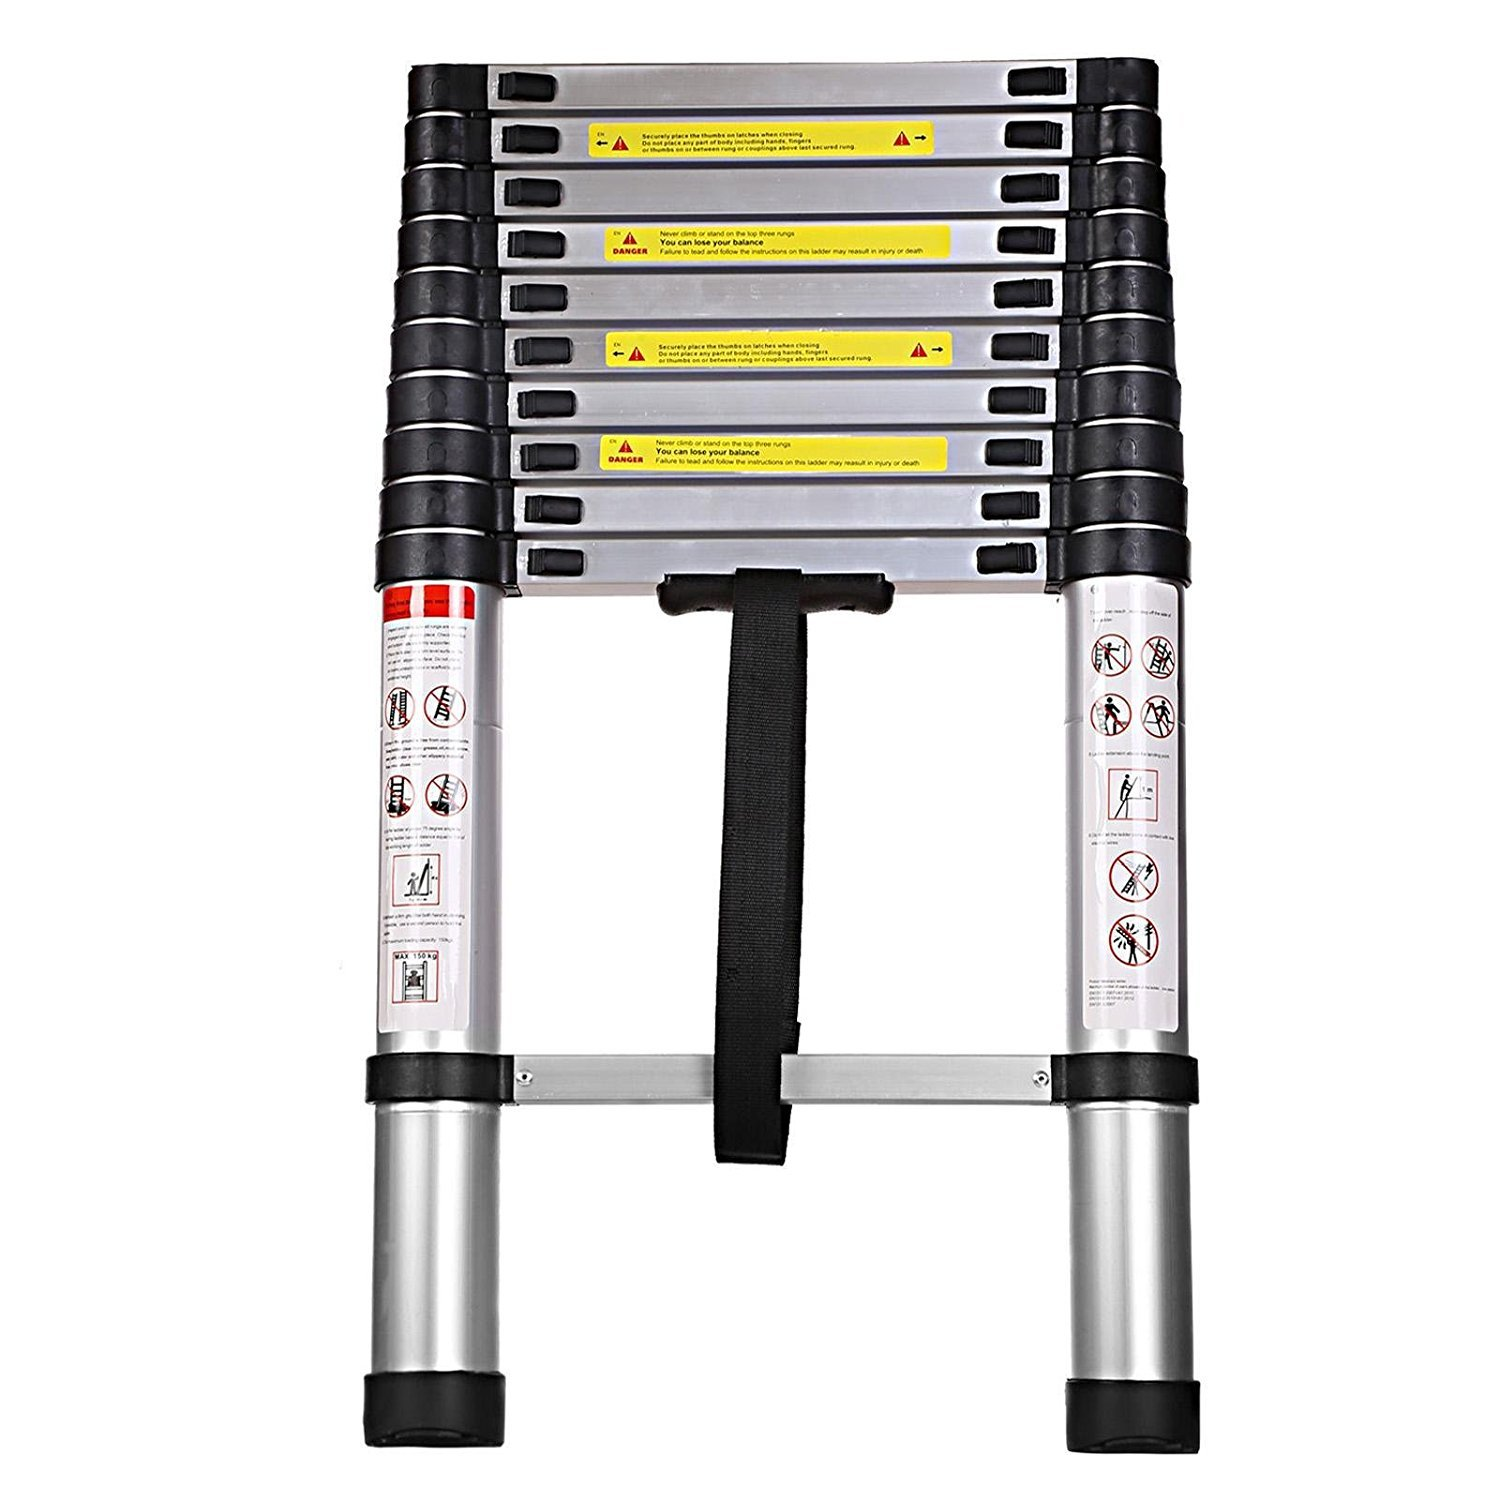 Kaluo Aluminum Telescopic Ladders Extension Ladder Multi-Purpose Collapsible Ladder 10 Steps-Max 330lbs Capacity